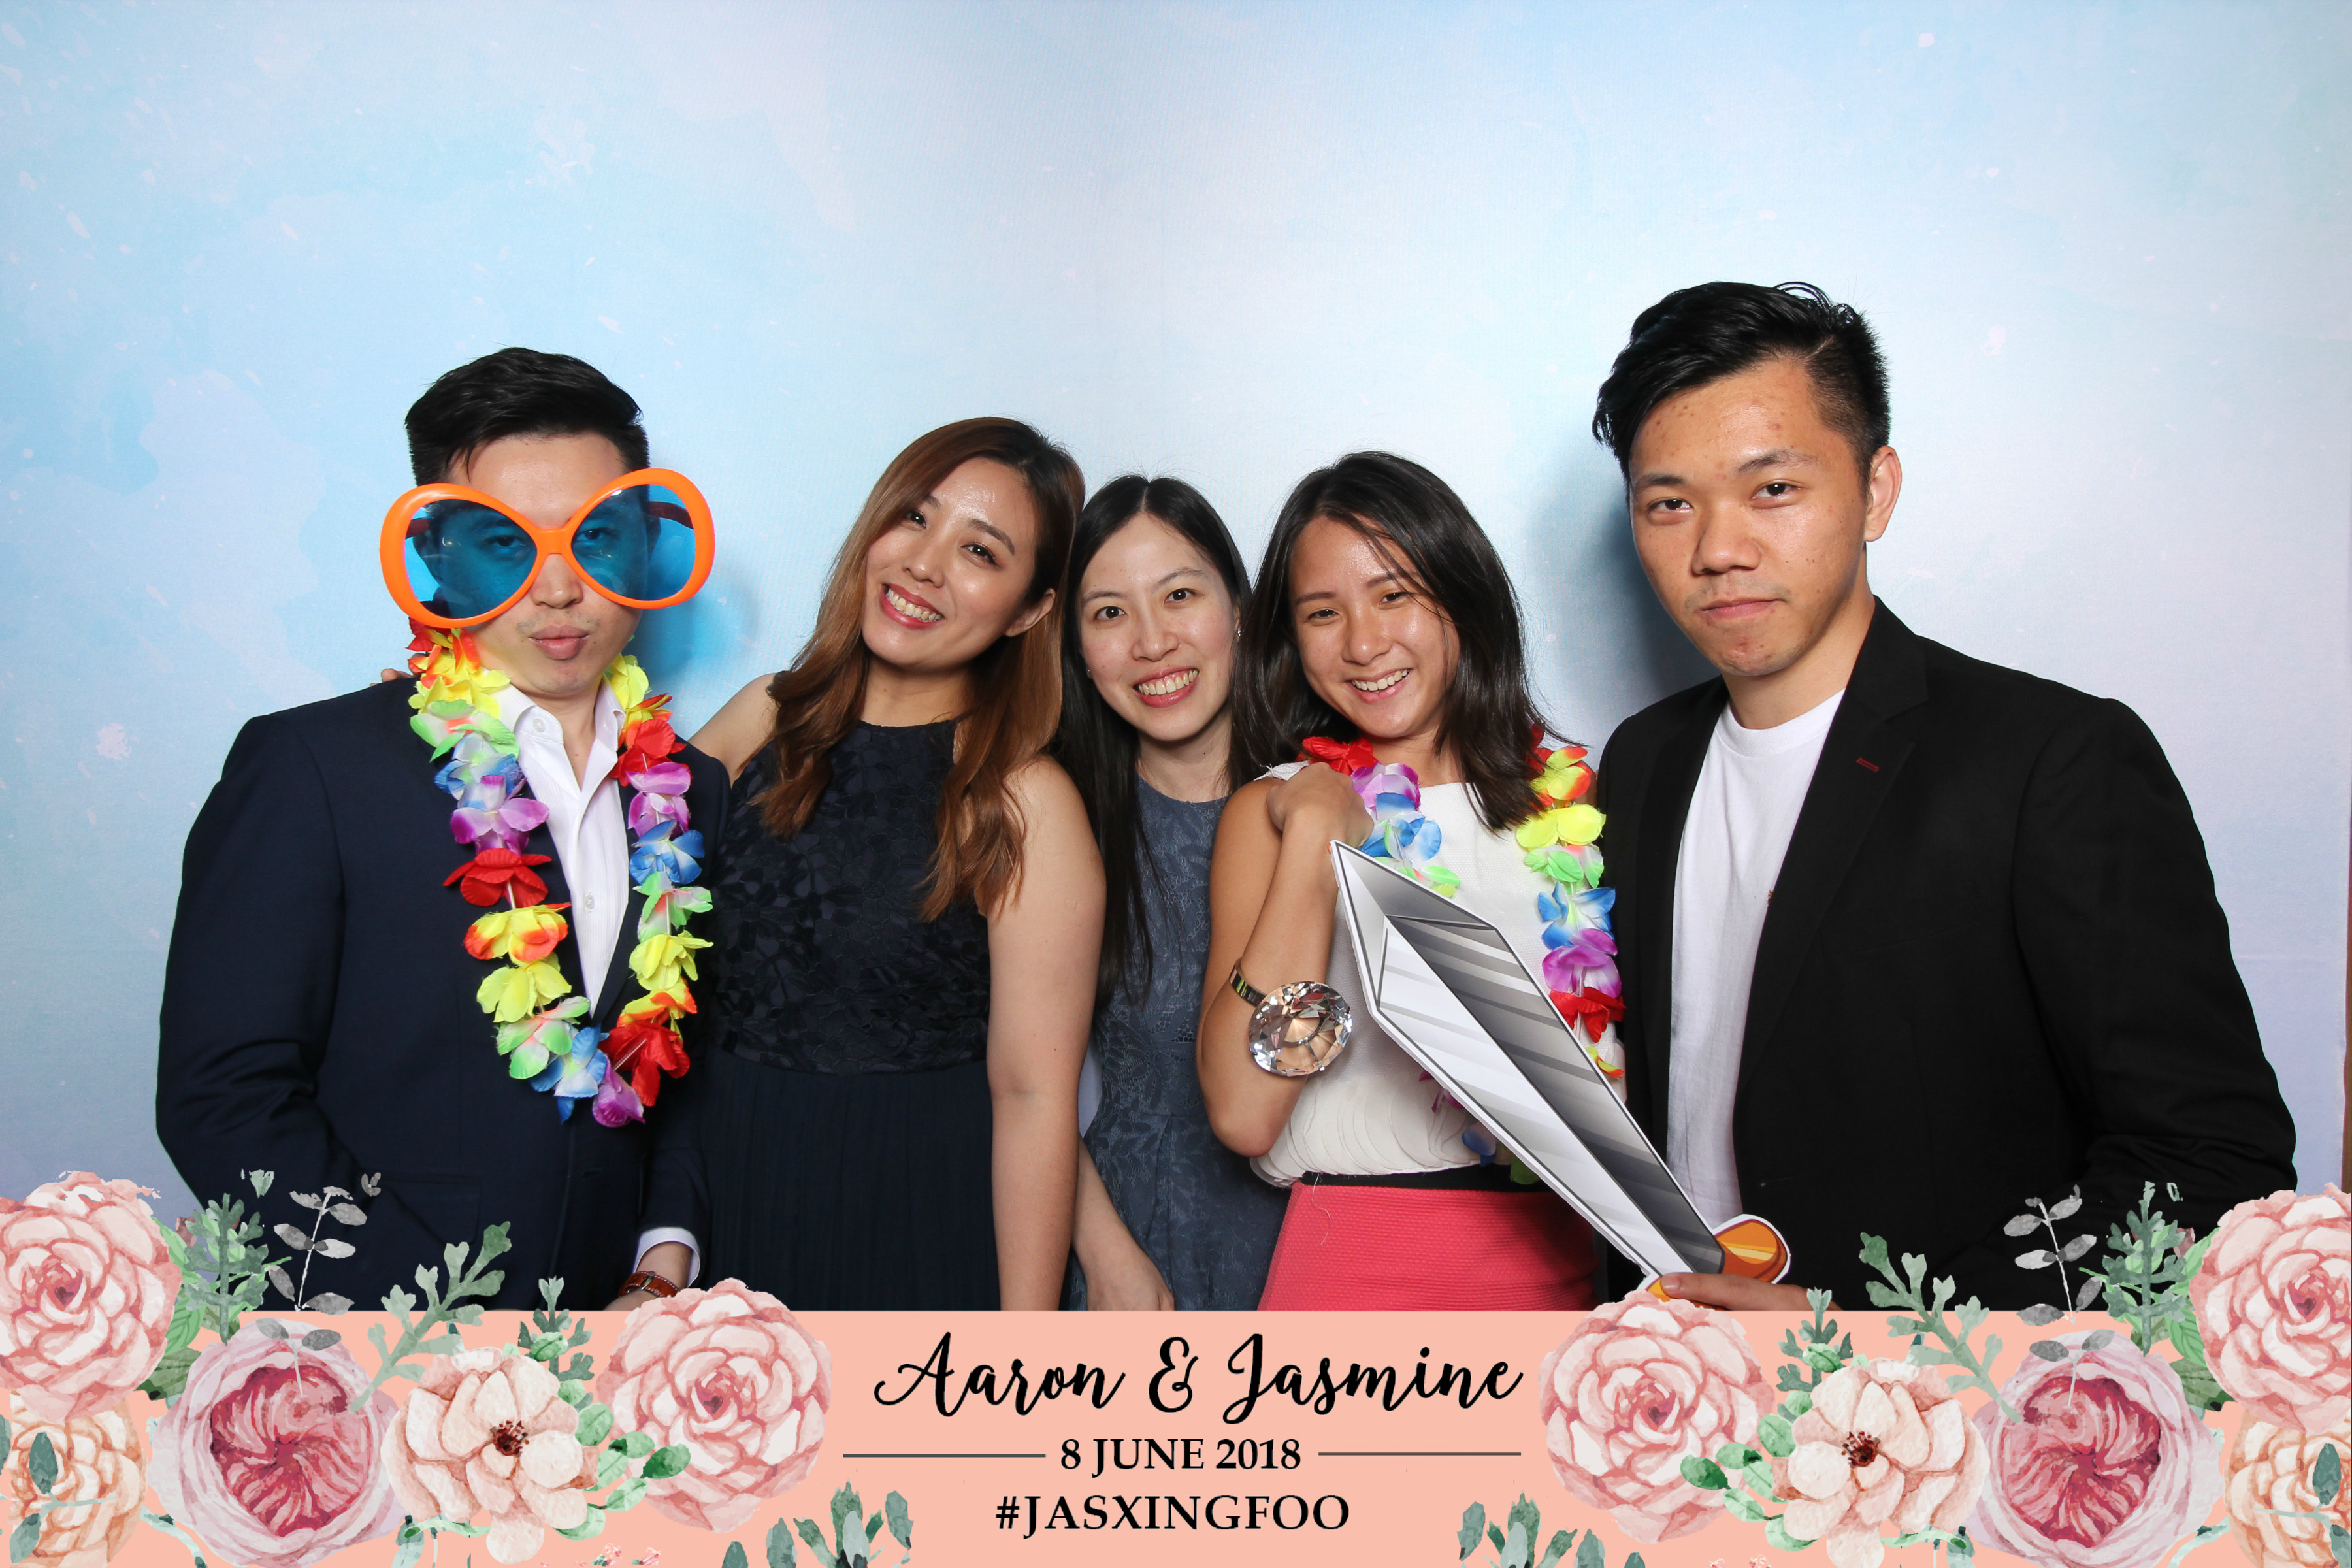 Photobooth 0806-73